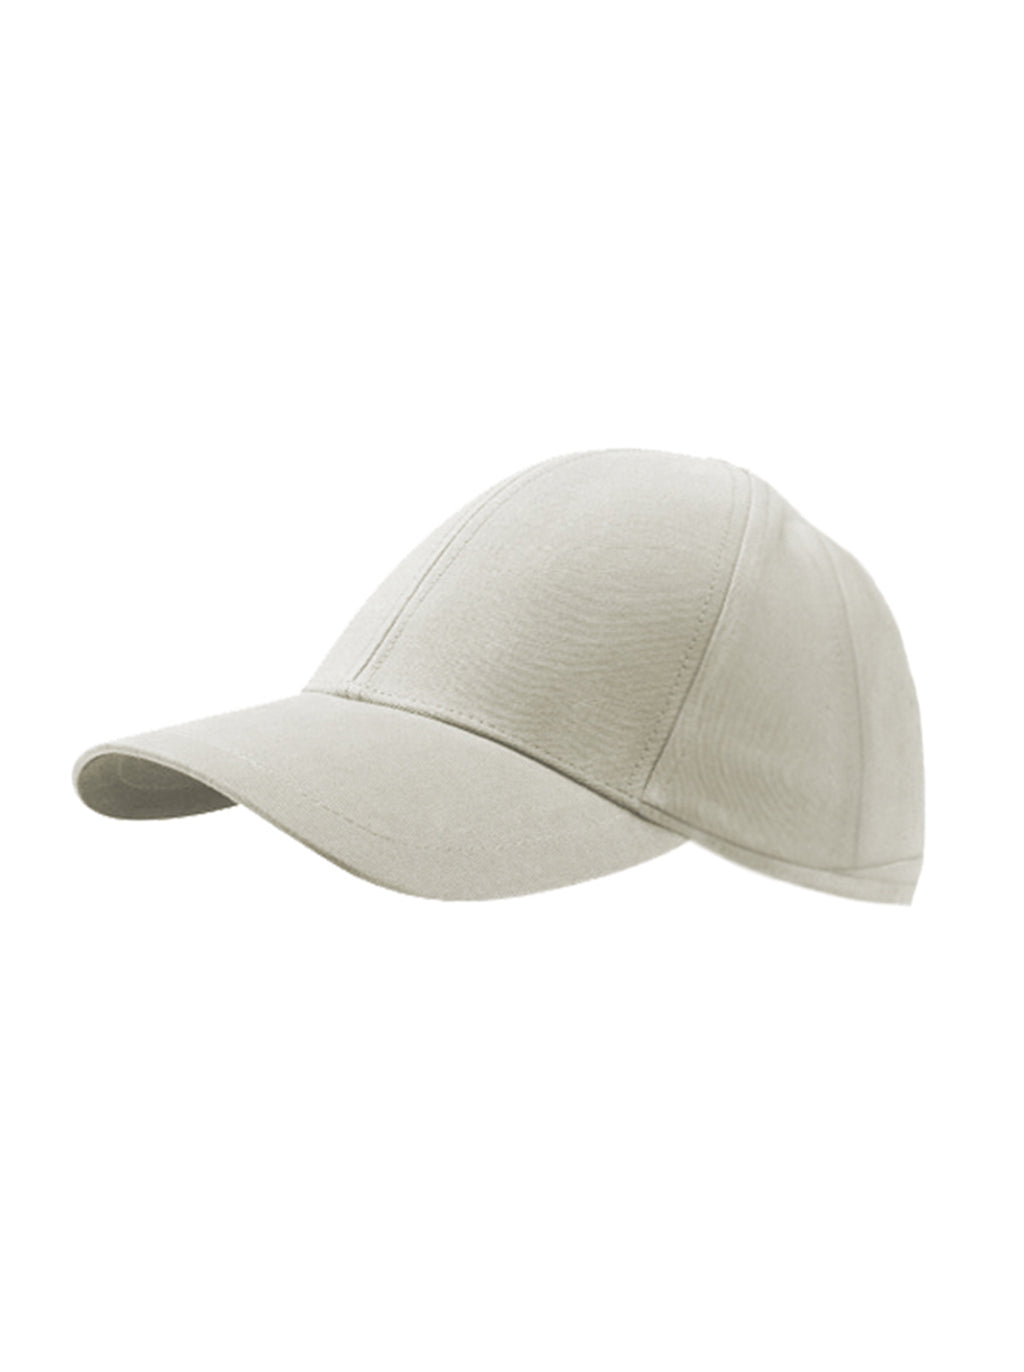 Fast Dri Corporate Cap